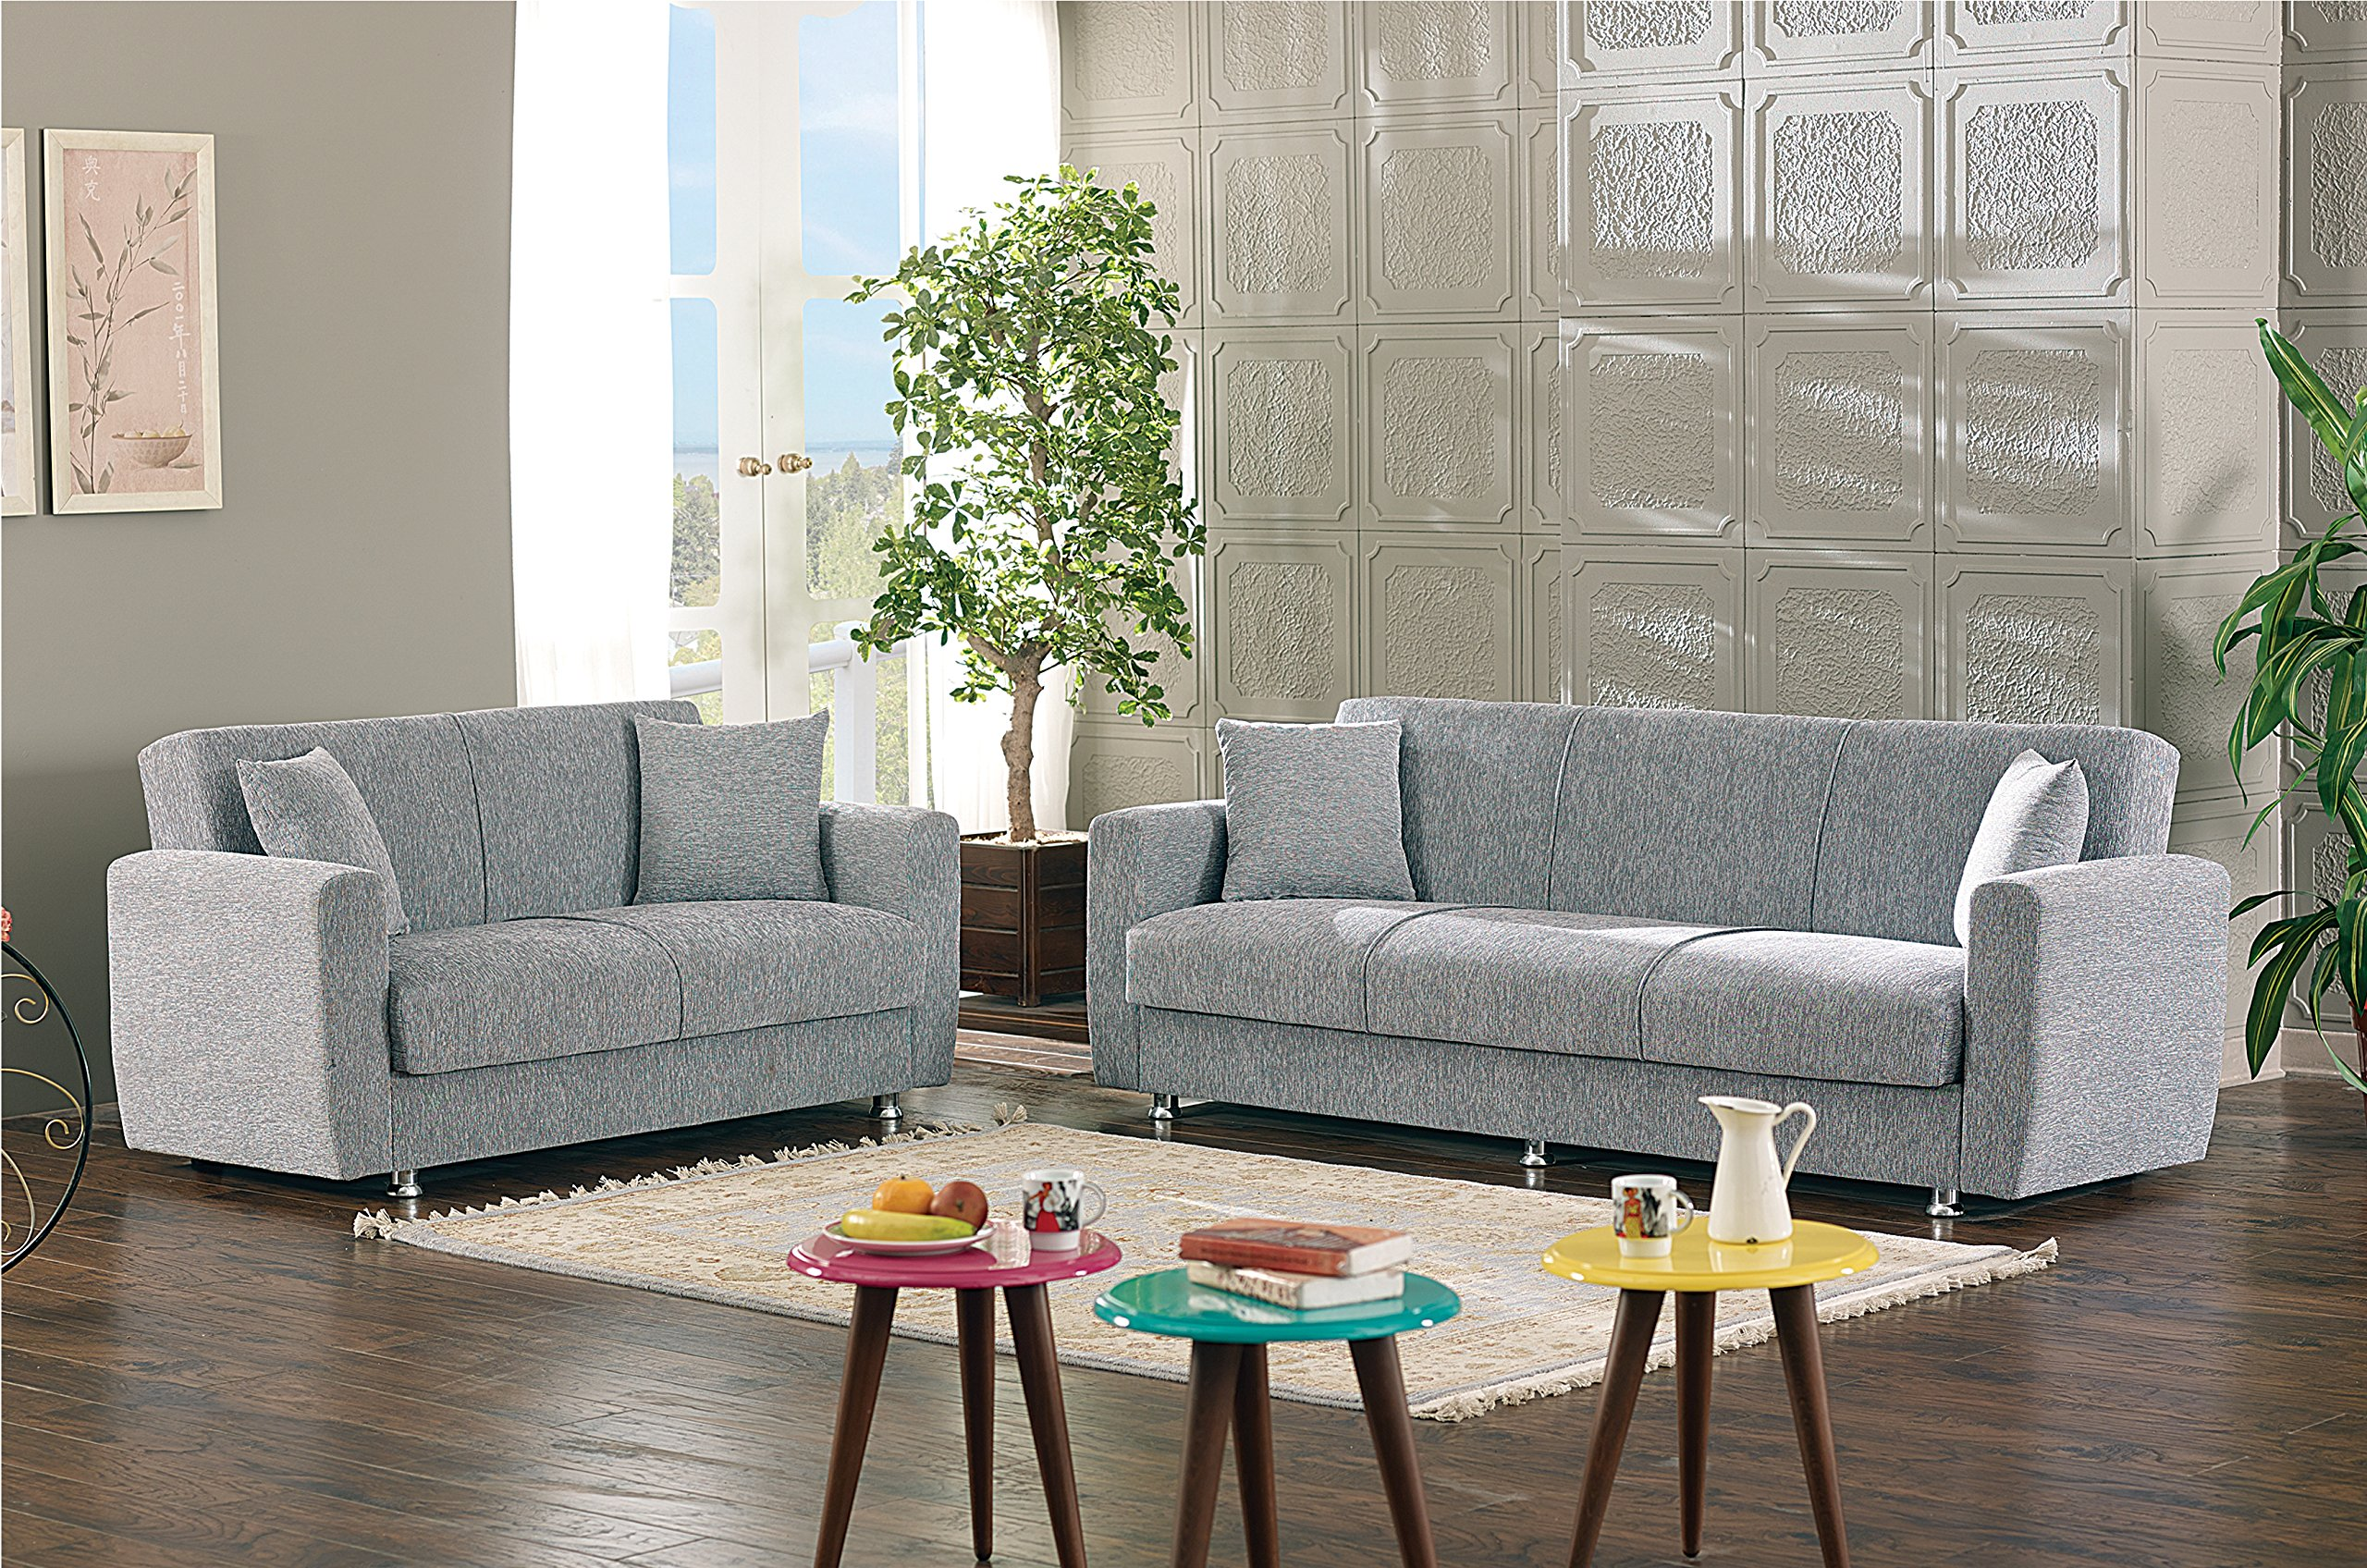 BEYAN Niagara Collection Contemporary Upholstered Convertible Storage Love Seat with Easy Access Storage Space, Includes 2 Pillows, Gray